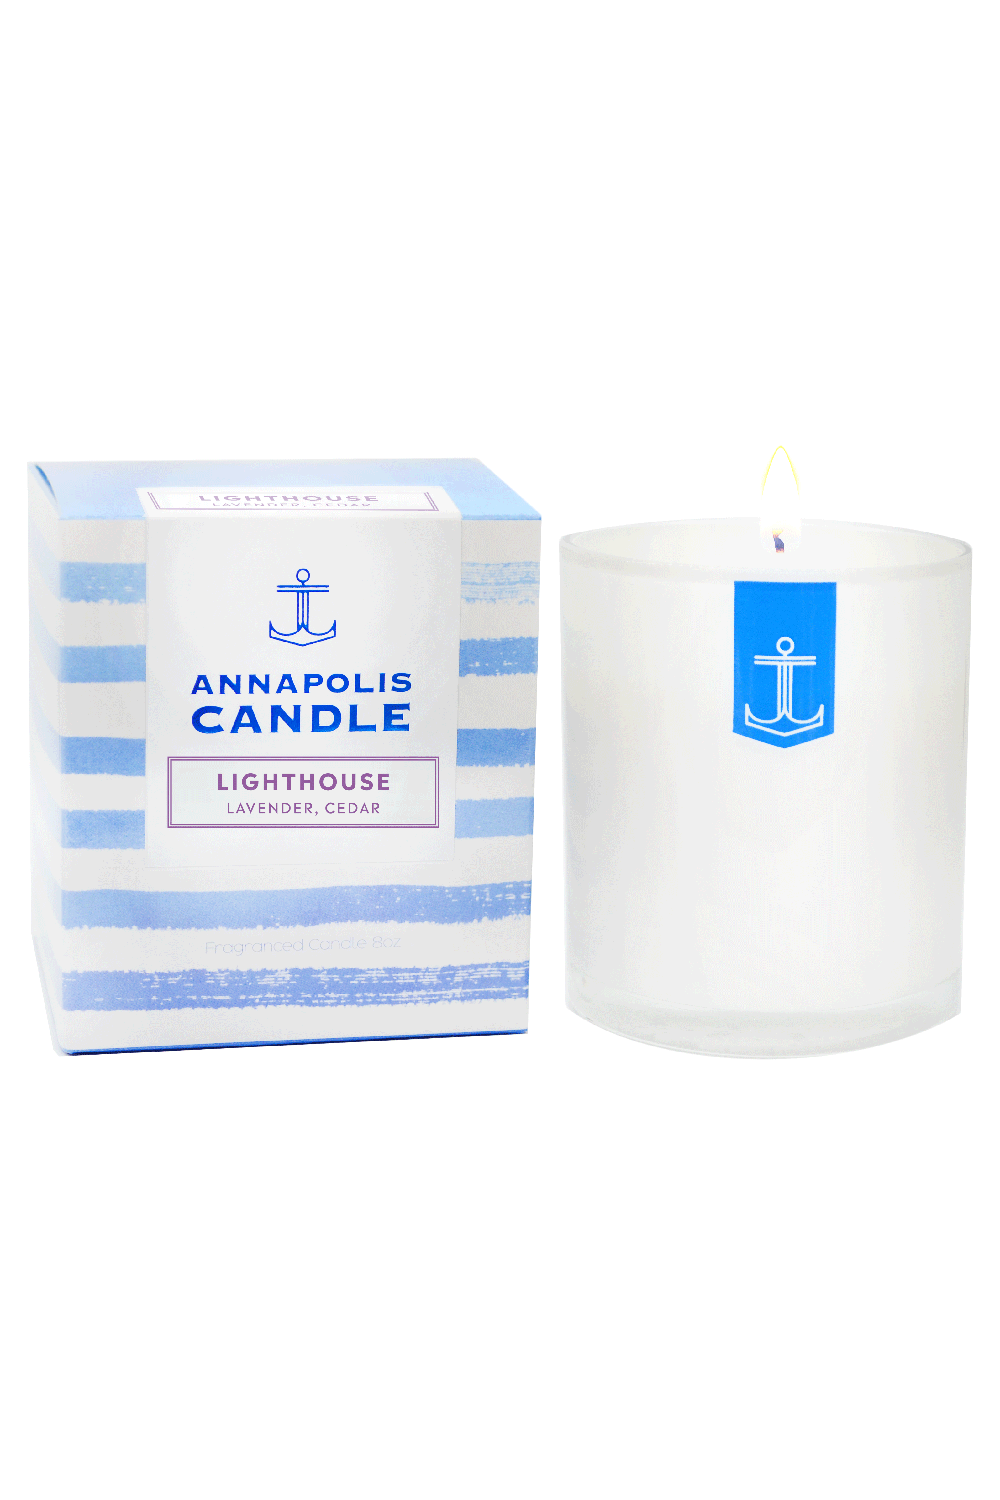 *NEW* Boxed Annapolis Candle - Lighthouse